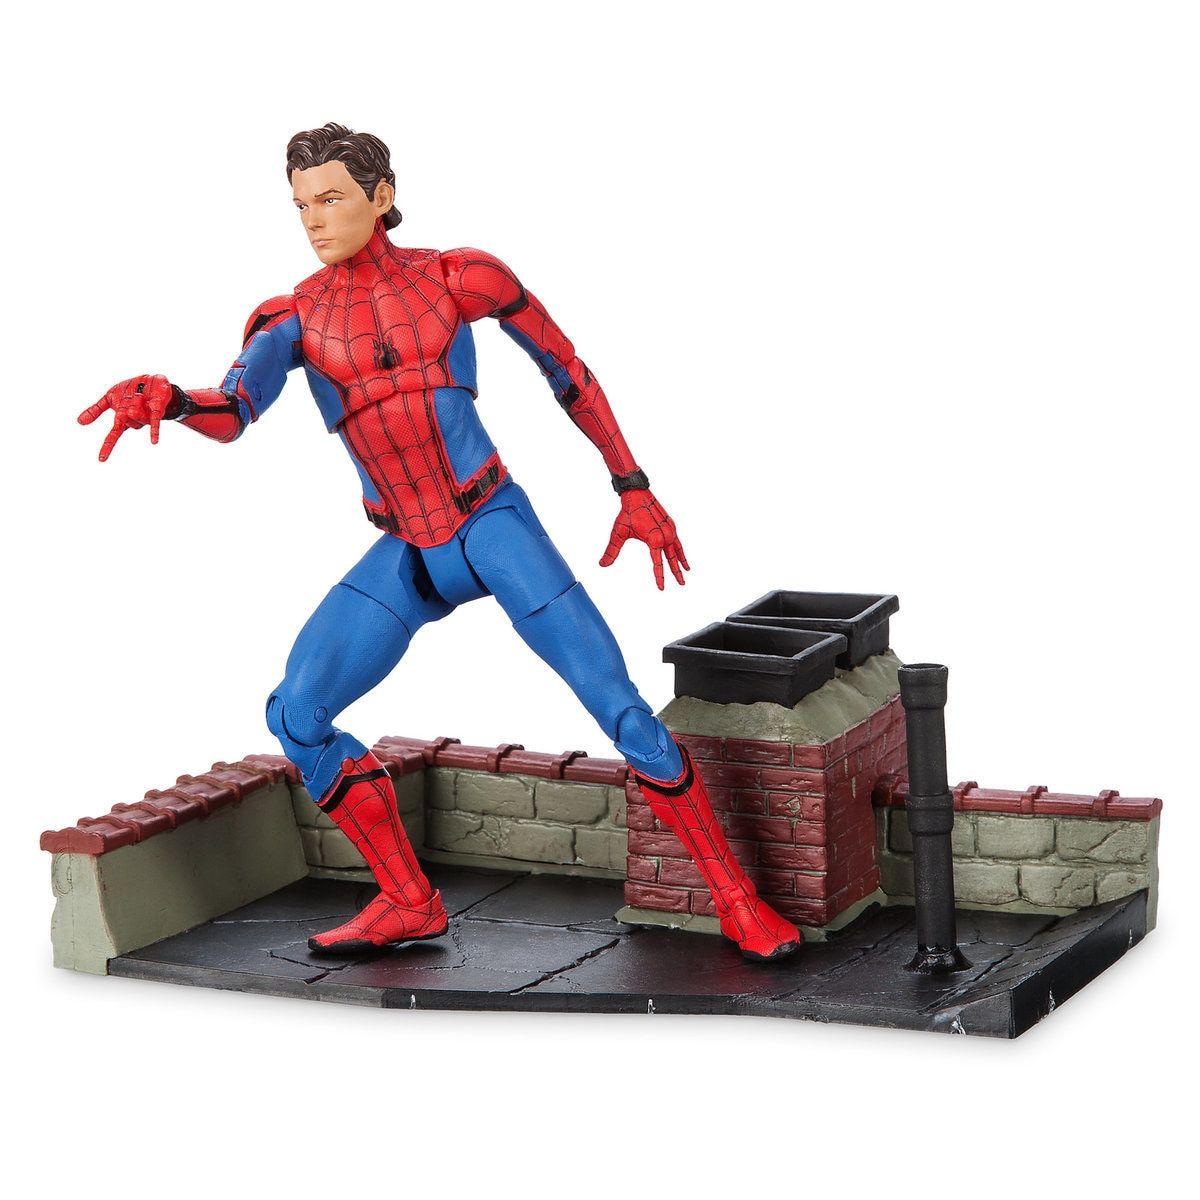 dd5636f8b9 Product Image of Spider-Man Action Figure - Marvel Select - Spider-Man